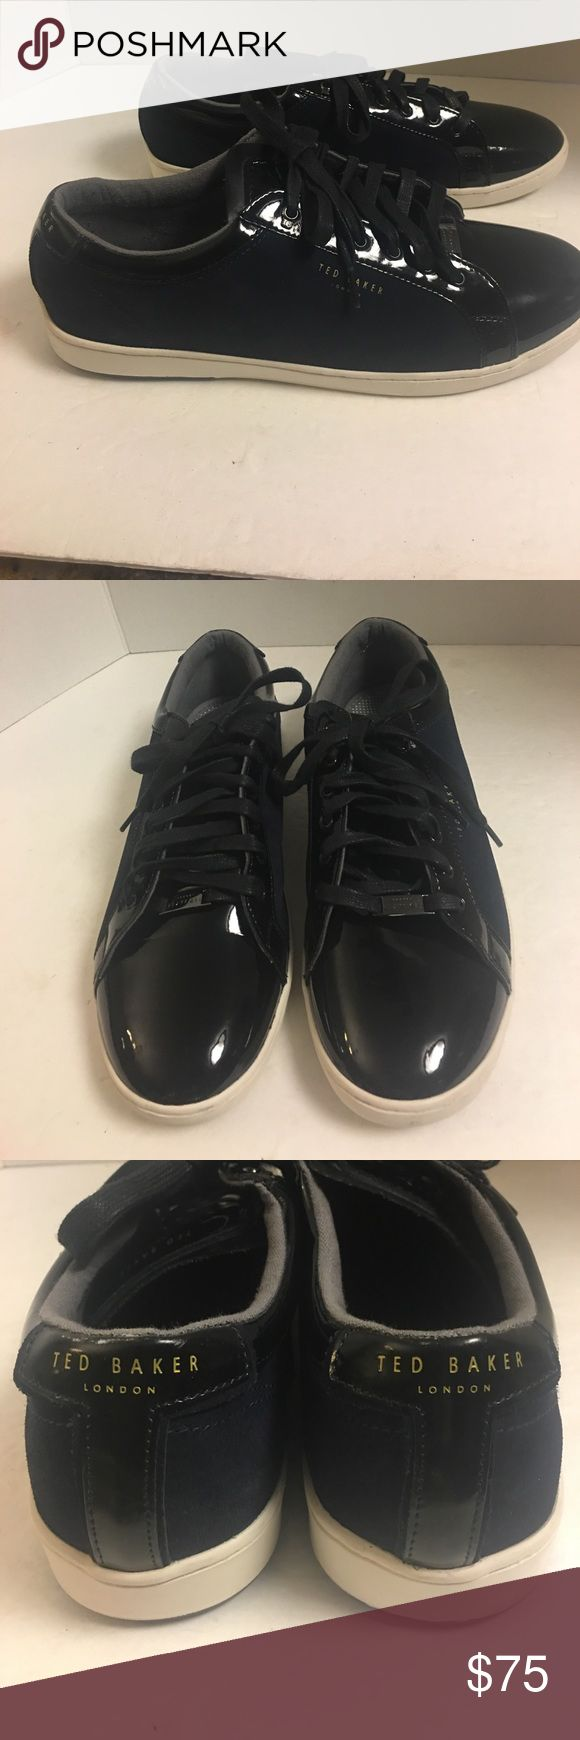 Ted Baker black navy patent leather trainers Super nice pair of men's preowned Ted Baker Navy trainers with black patent leather trim. Lisa. Rubber soul. Size 12. Great preowned condition Ted Baker London Shoes Athletic Shoes